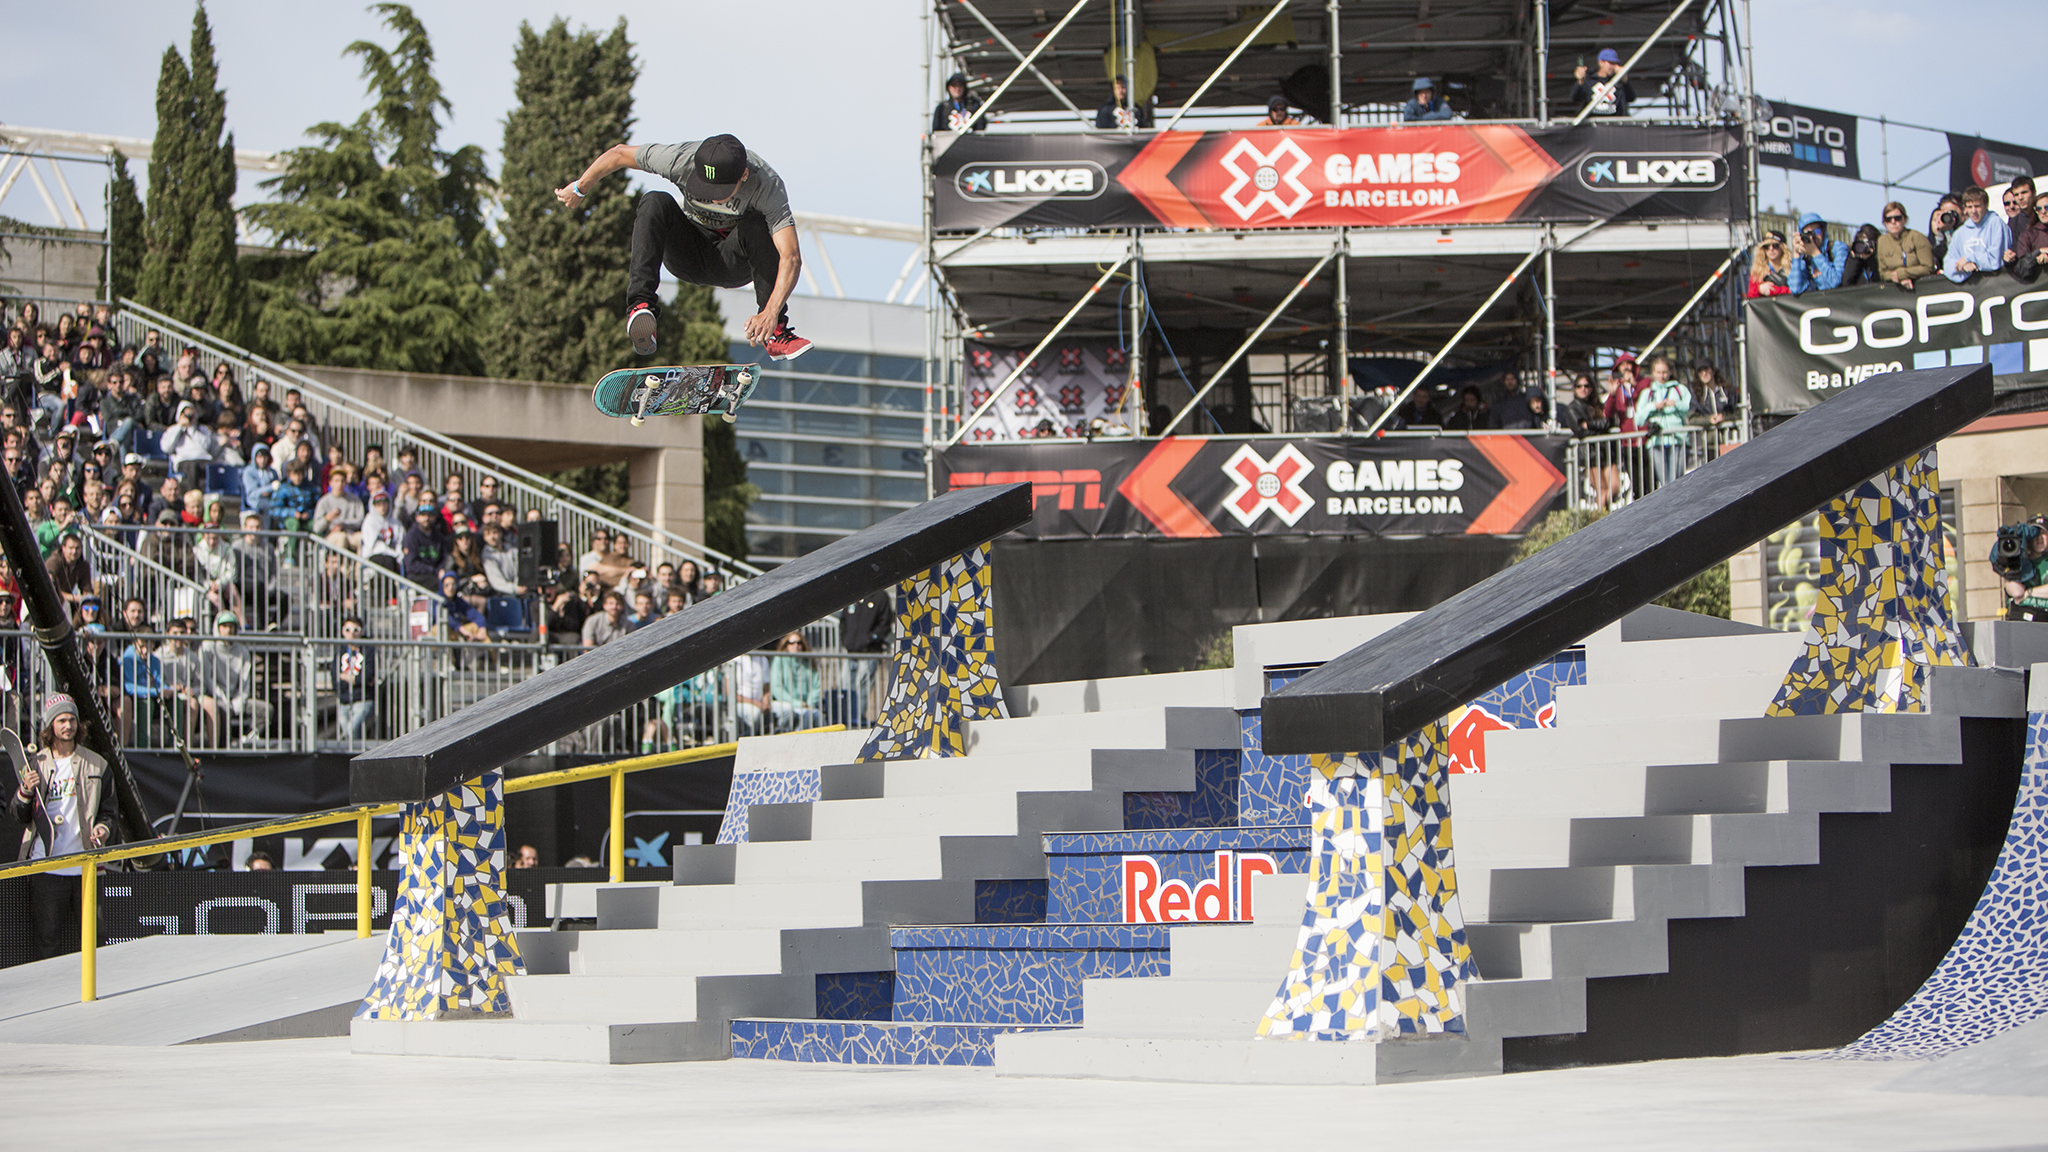 2. Nyjah Huston